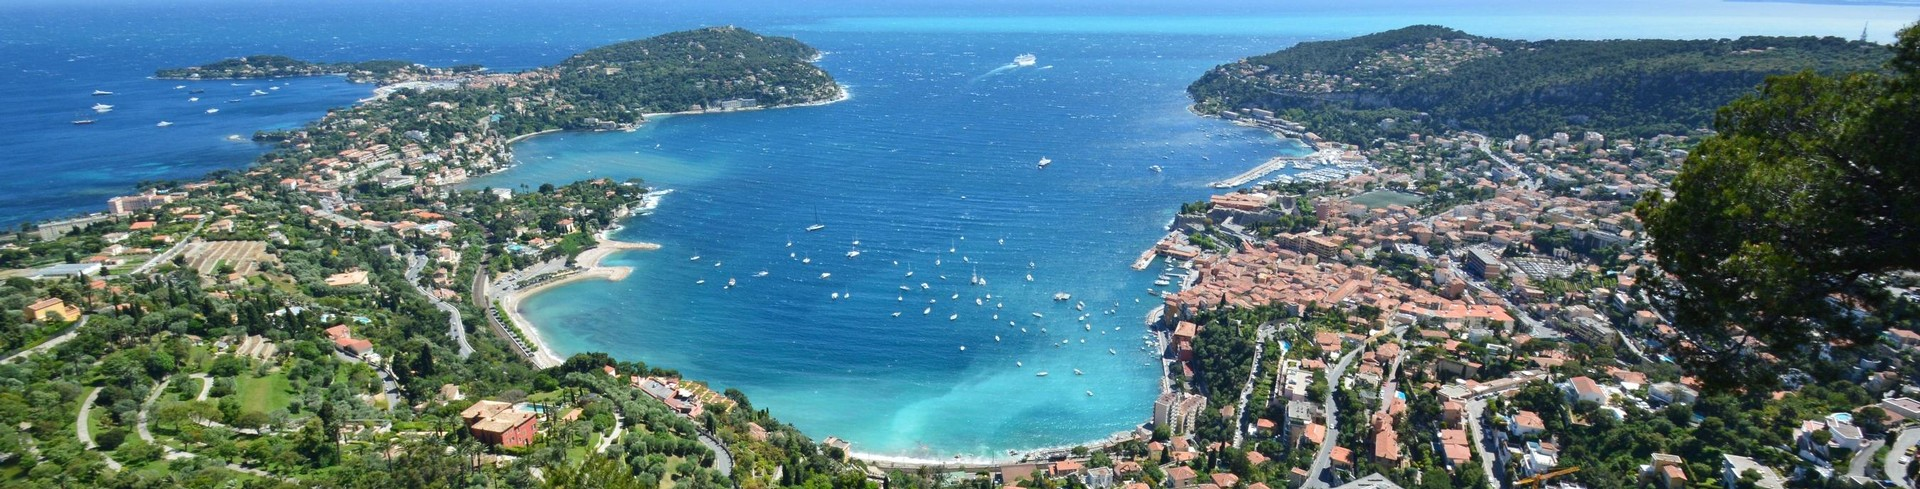 The Villefranche sur Mer Bay